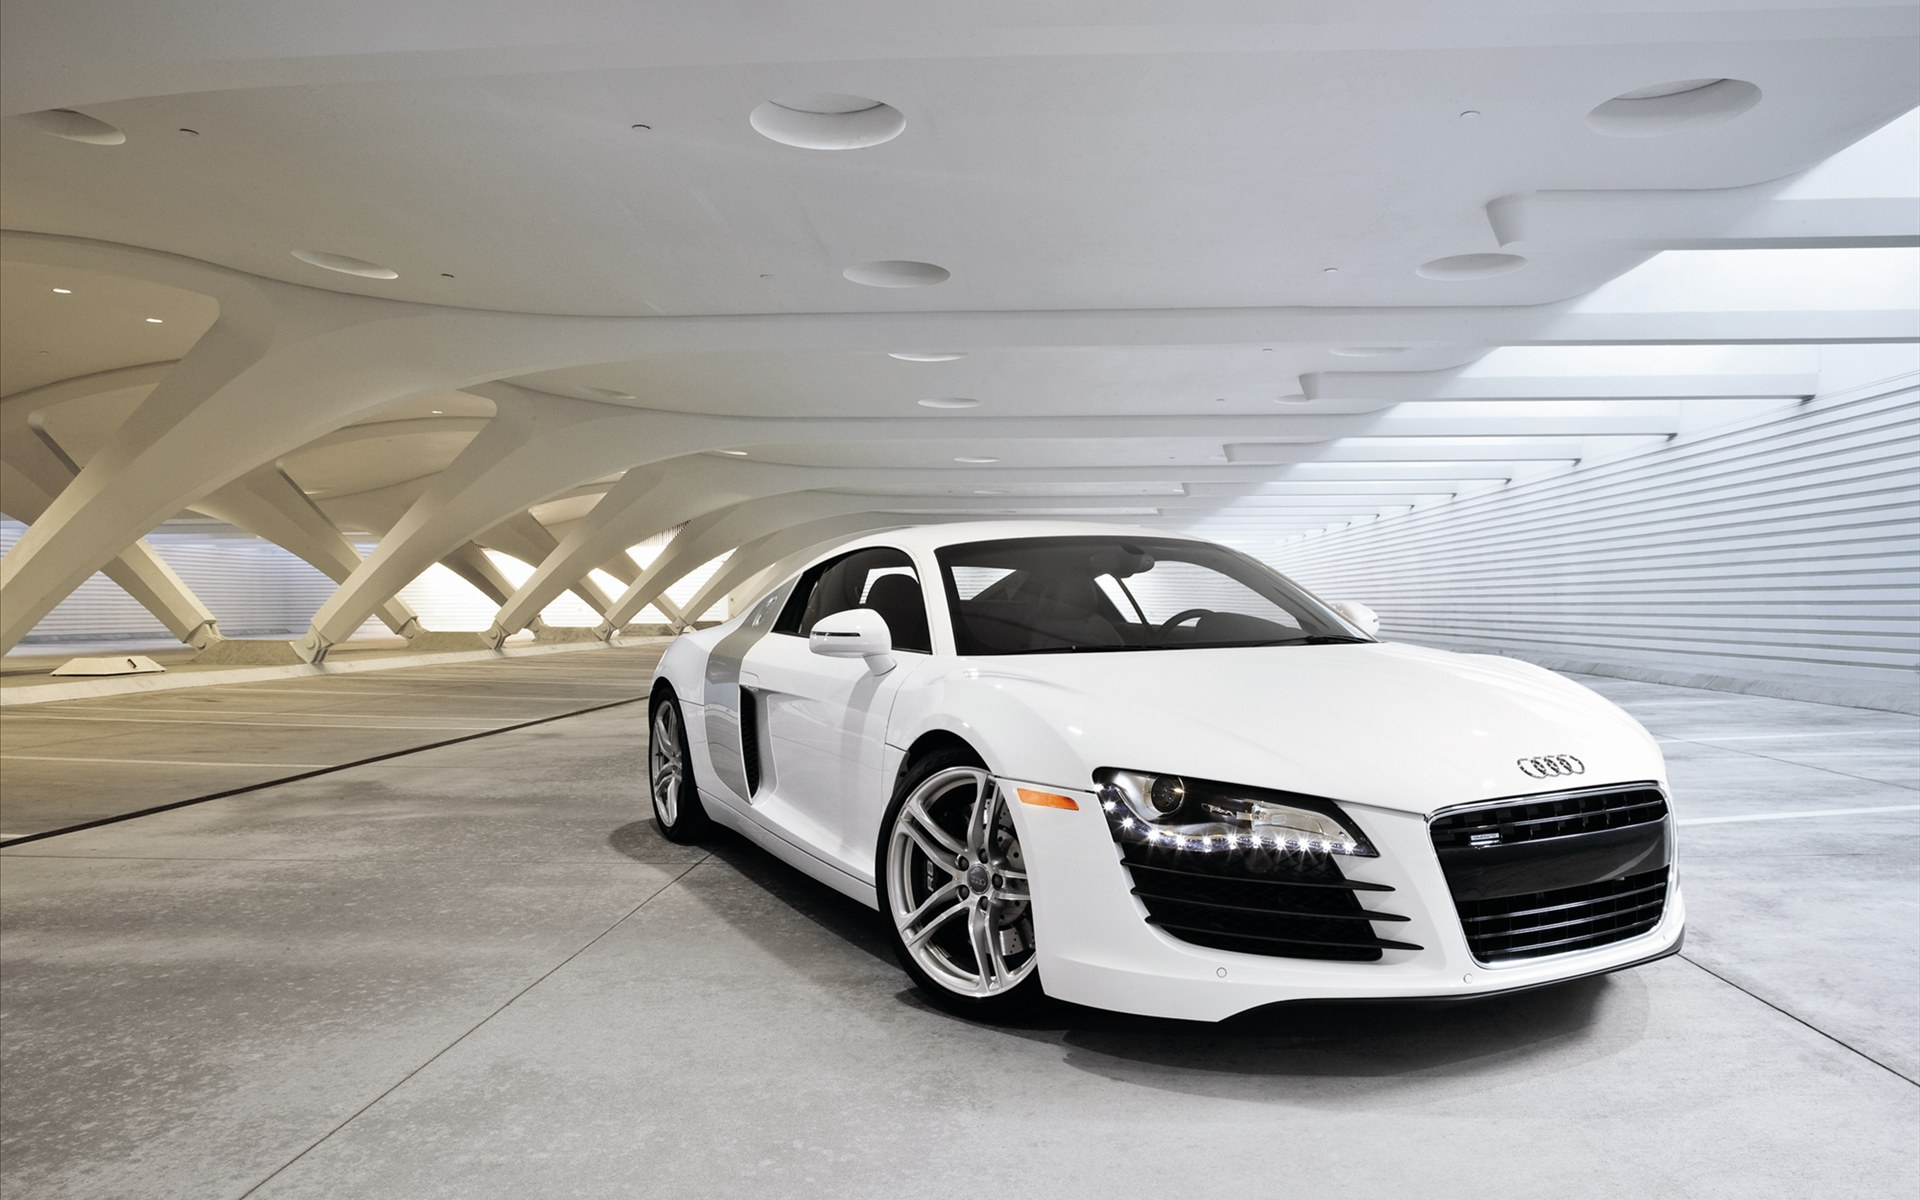 Wallpaper Of The Top Cars A White Sports Car Audi R8 Wallpaper 1920x1200